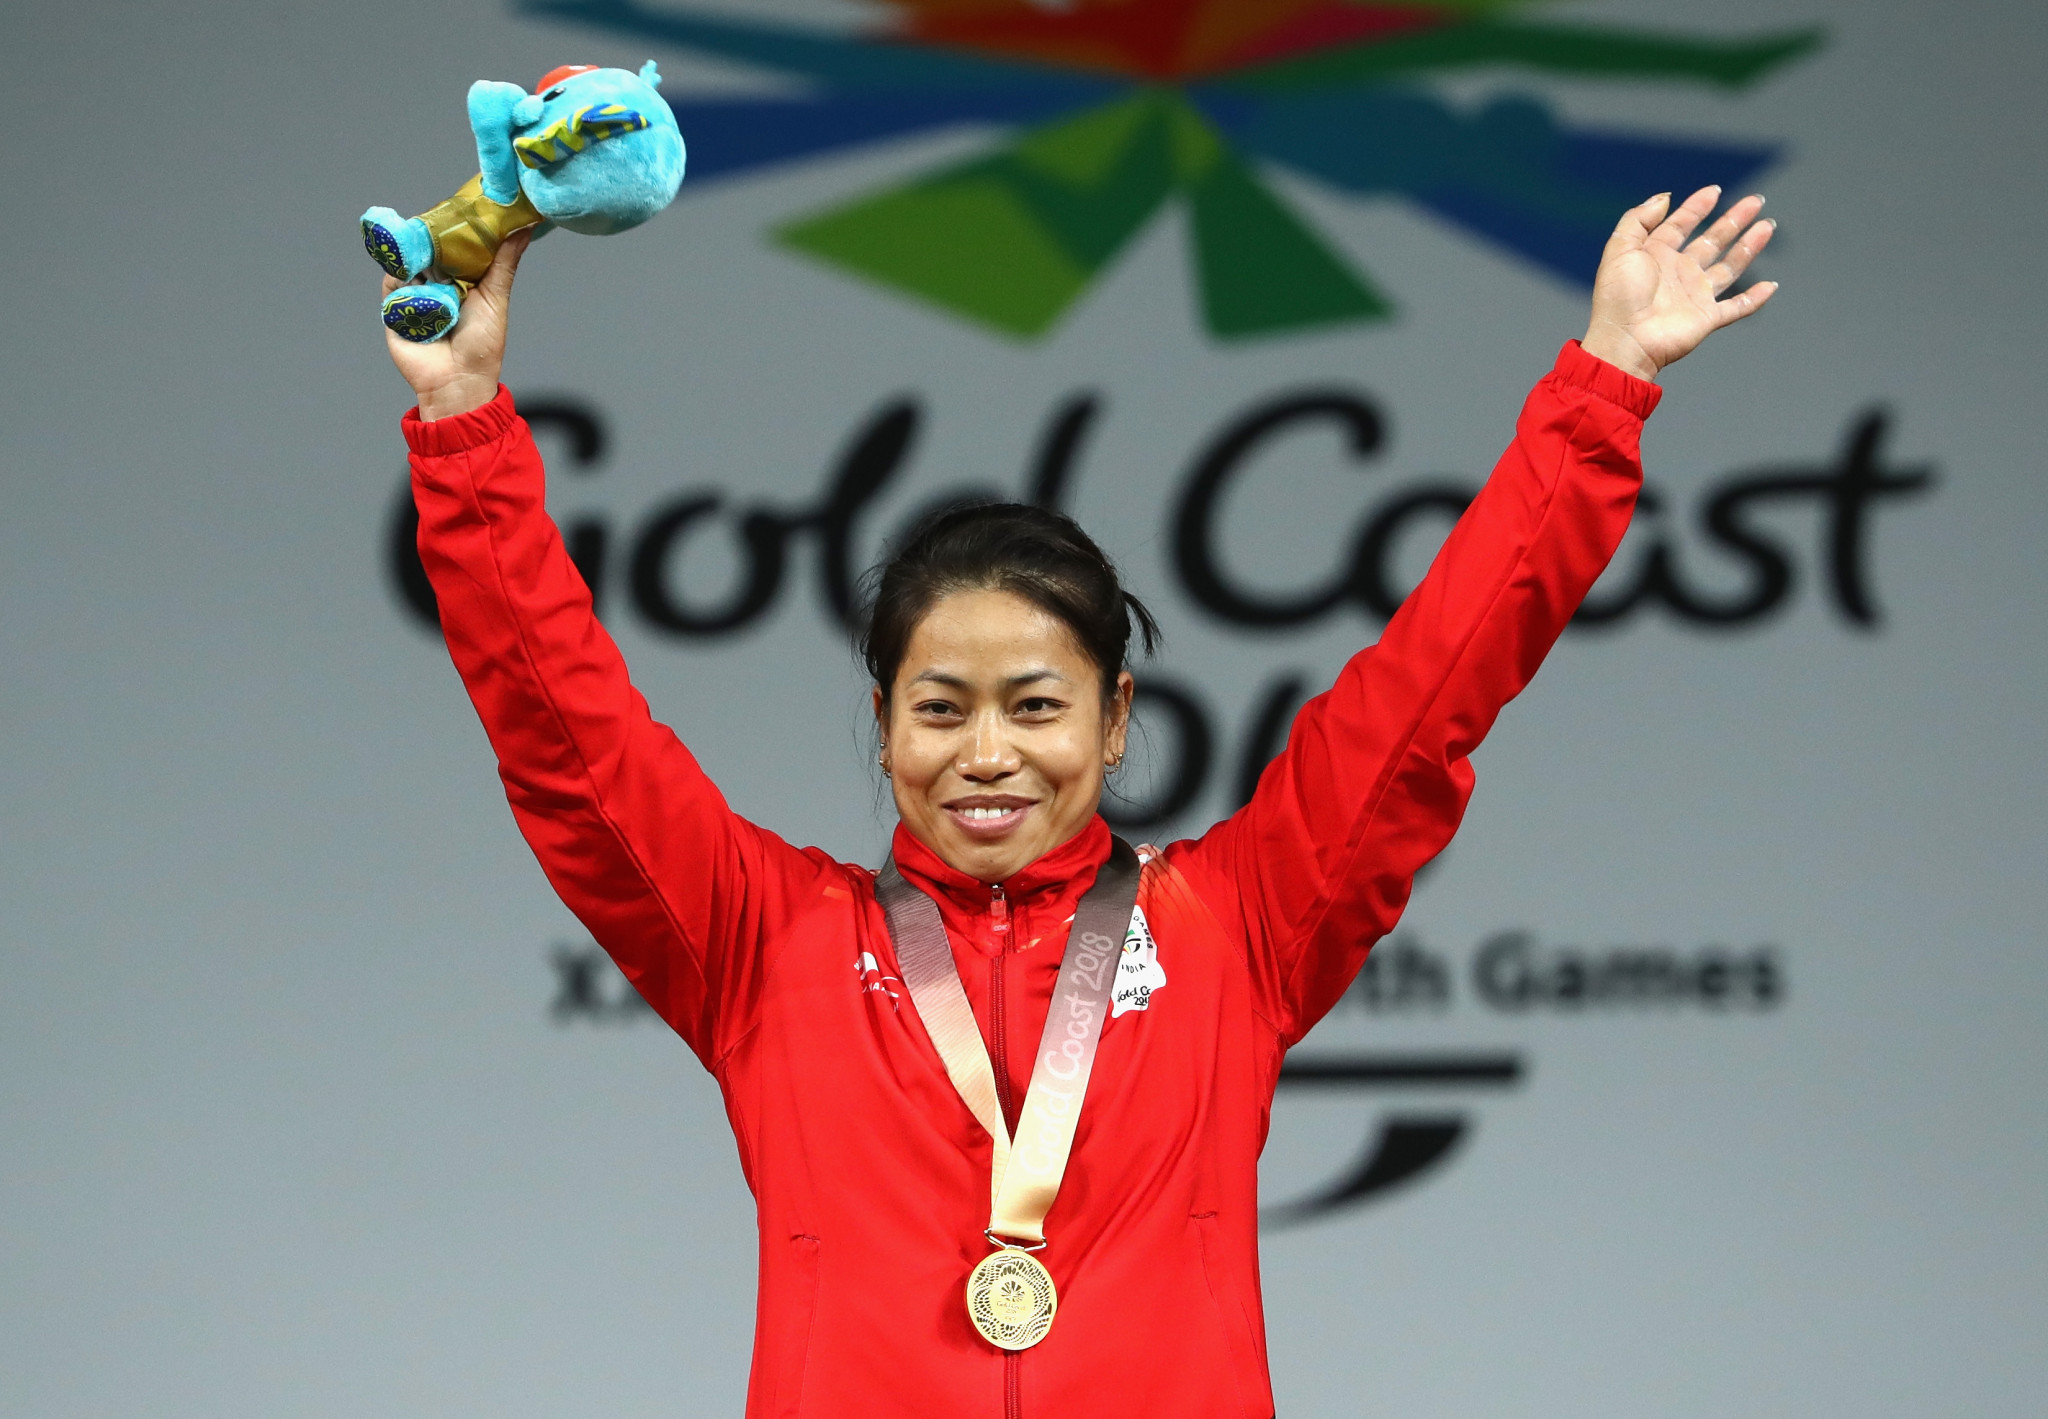 Gold Coast 2018 champion Khumukcham Sanjita Chanu has been allowed to compete again ©Getty Images